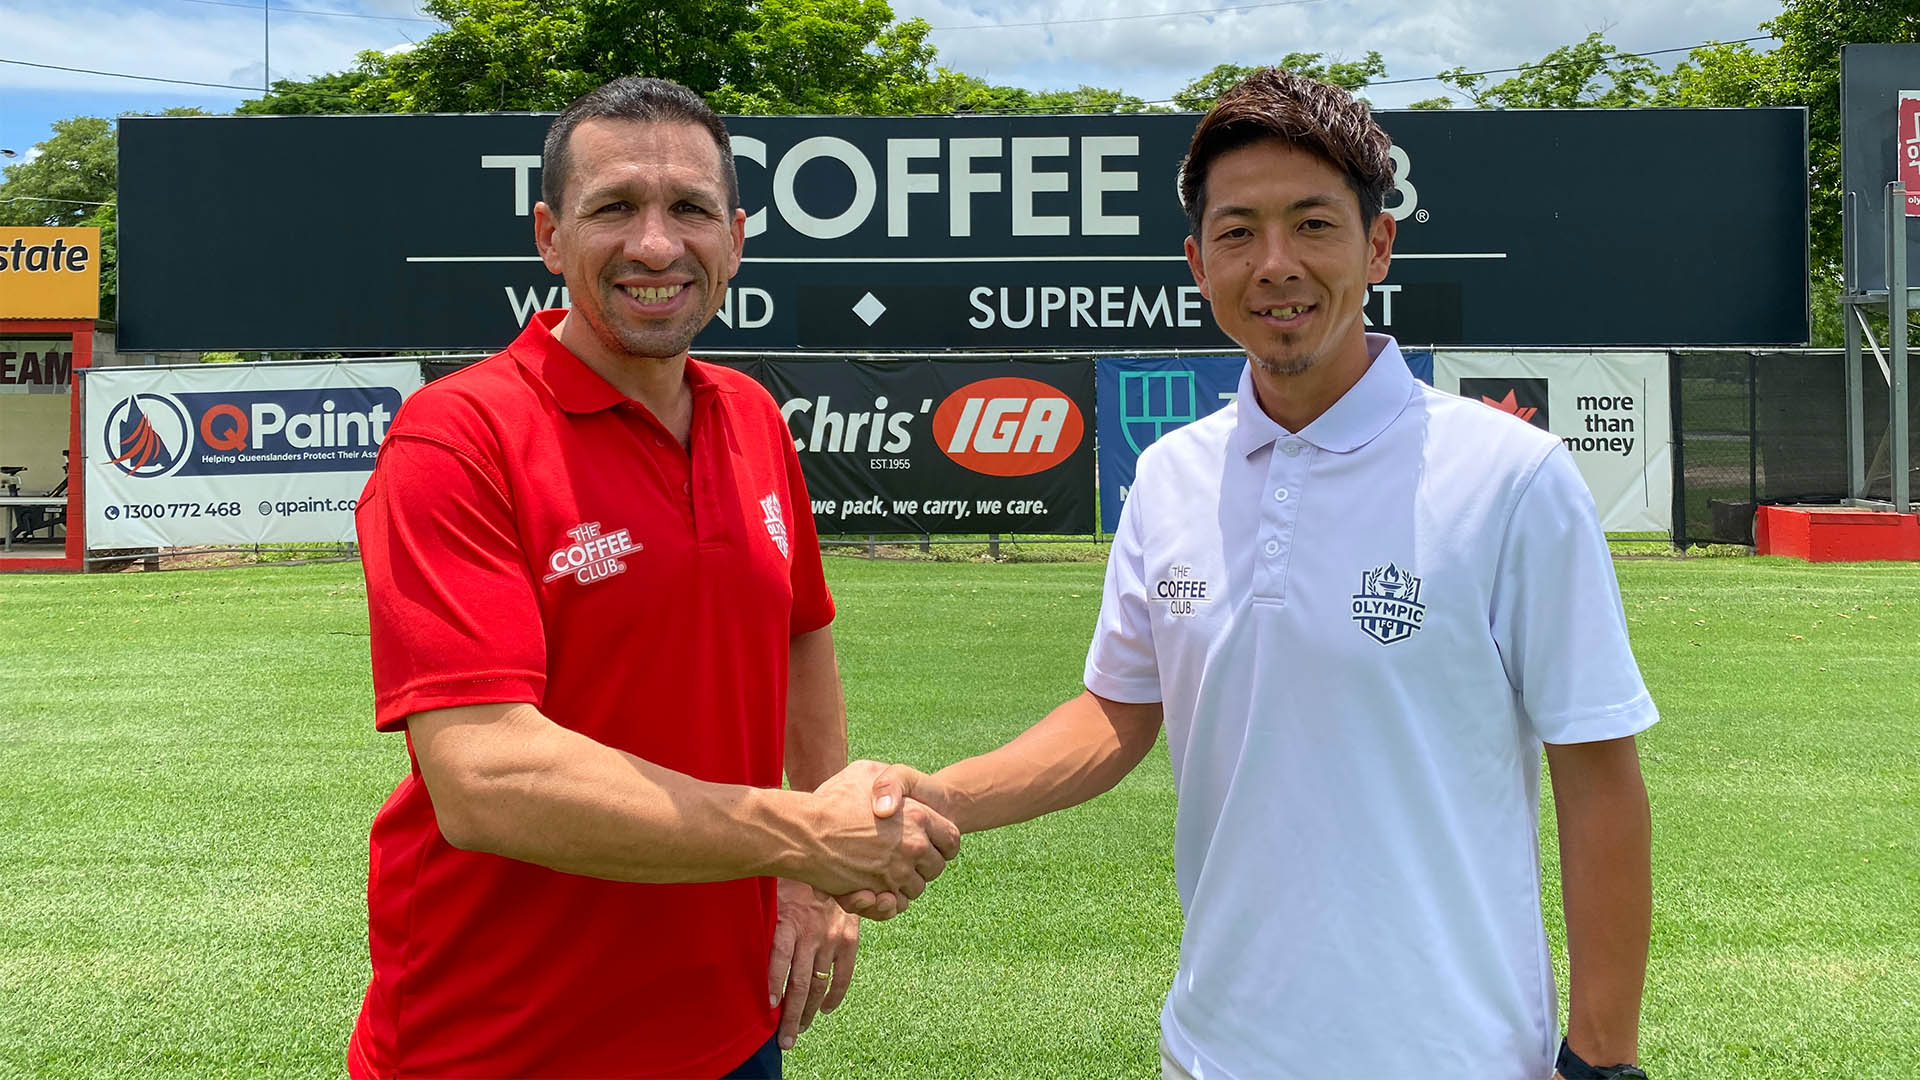 Ito appointed International Director